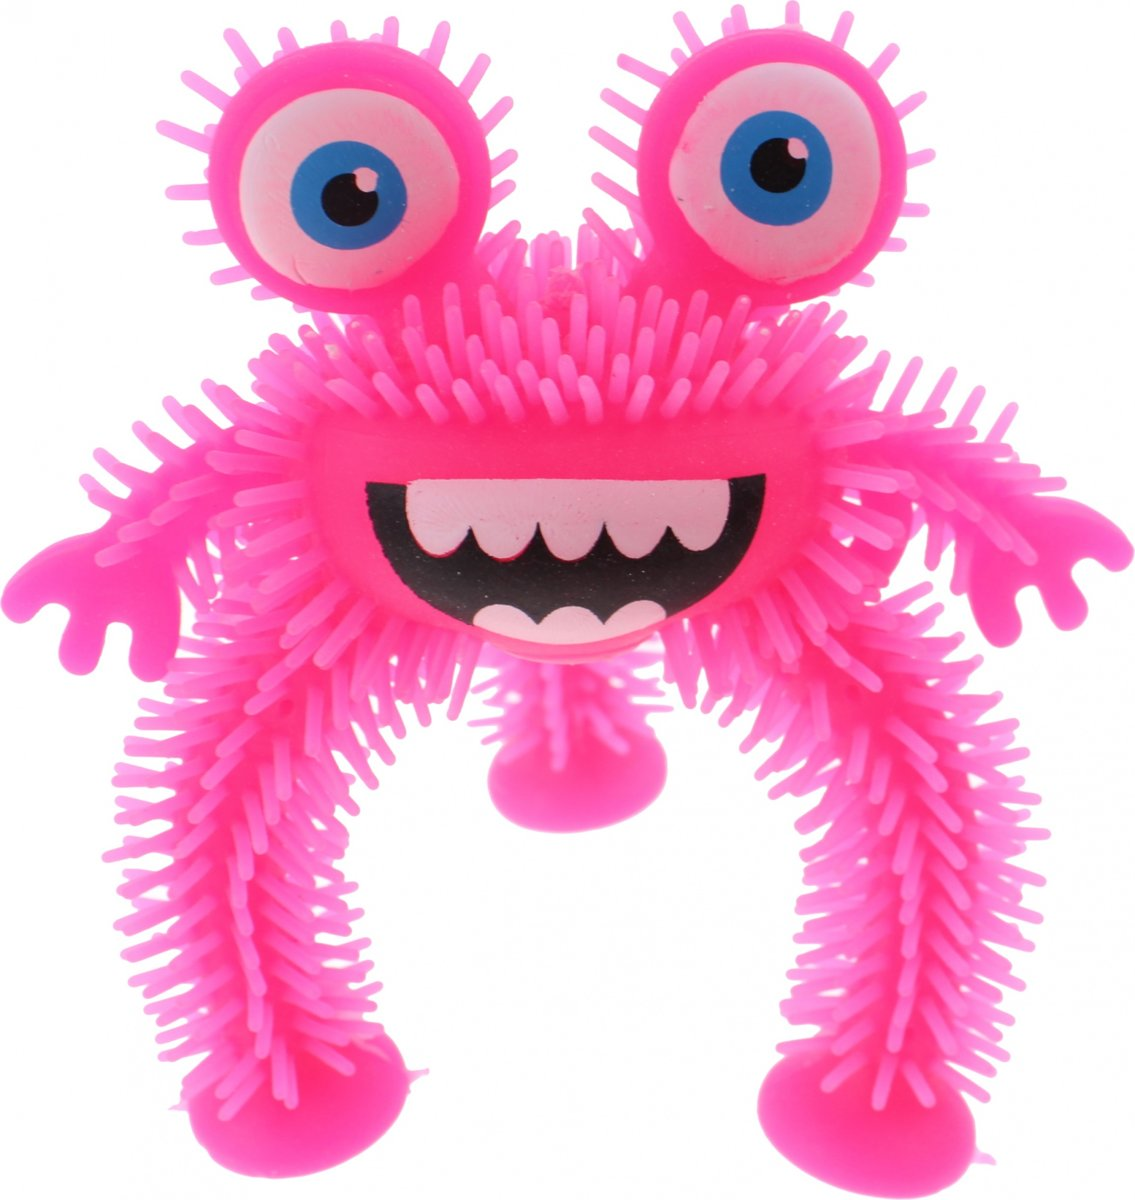 Johntoy Driepotig Monster 10 Cm Roze